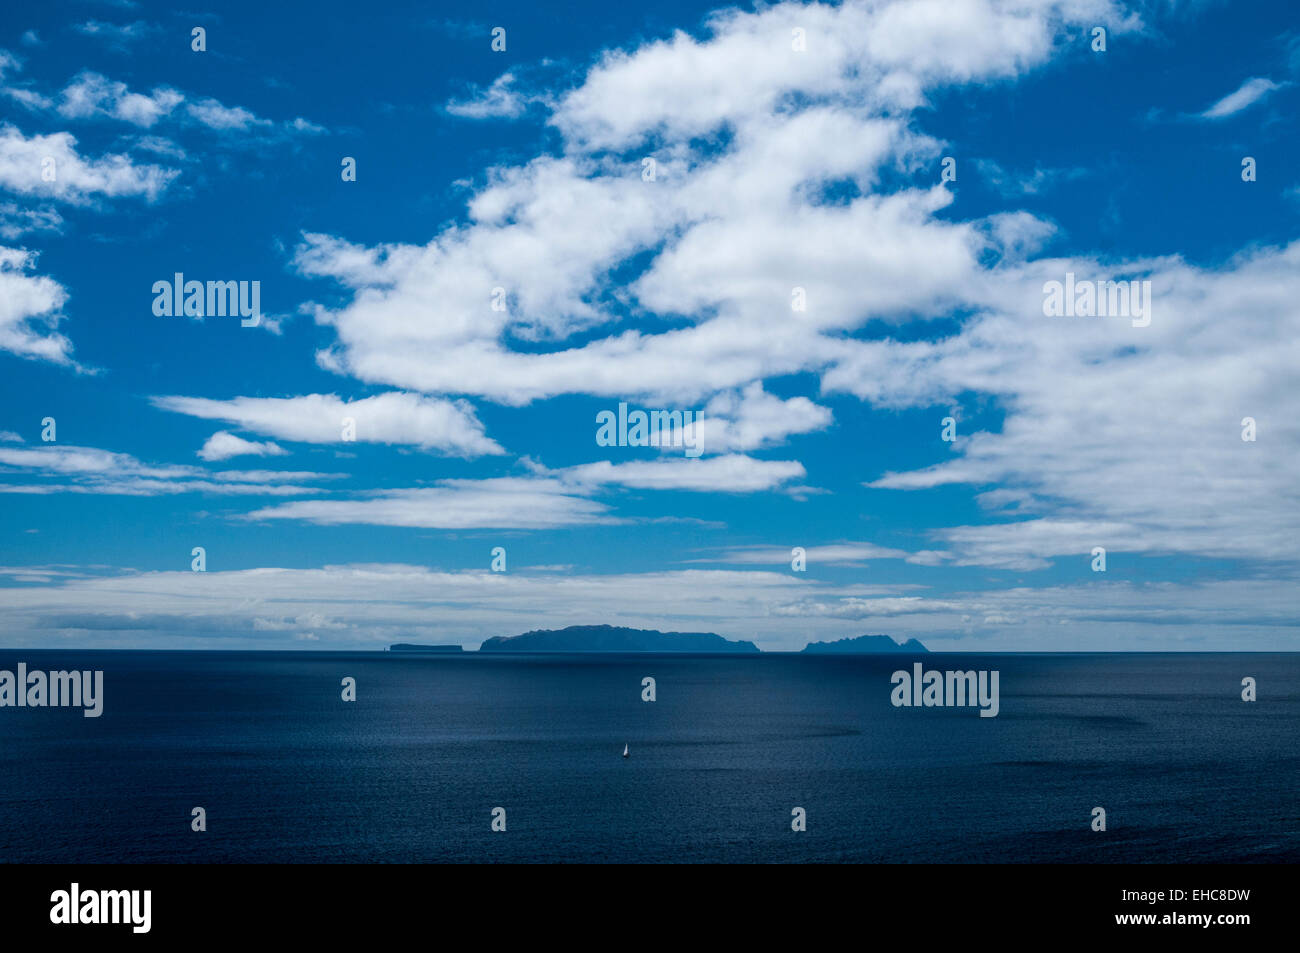 Three desert islands south of Madeira with a yacht barely visible in the foreground. - Stock Image